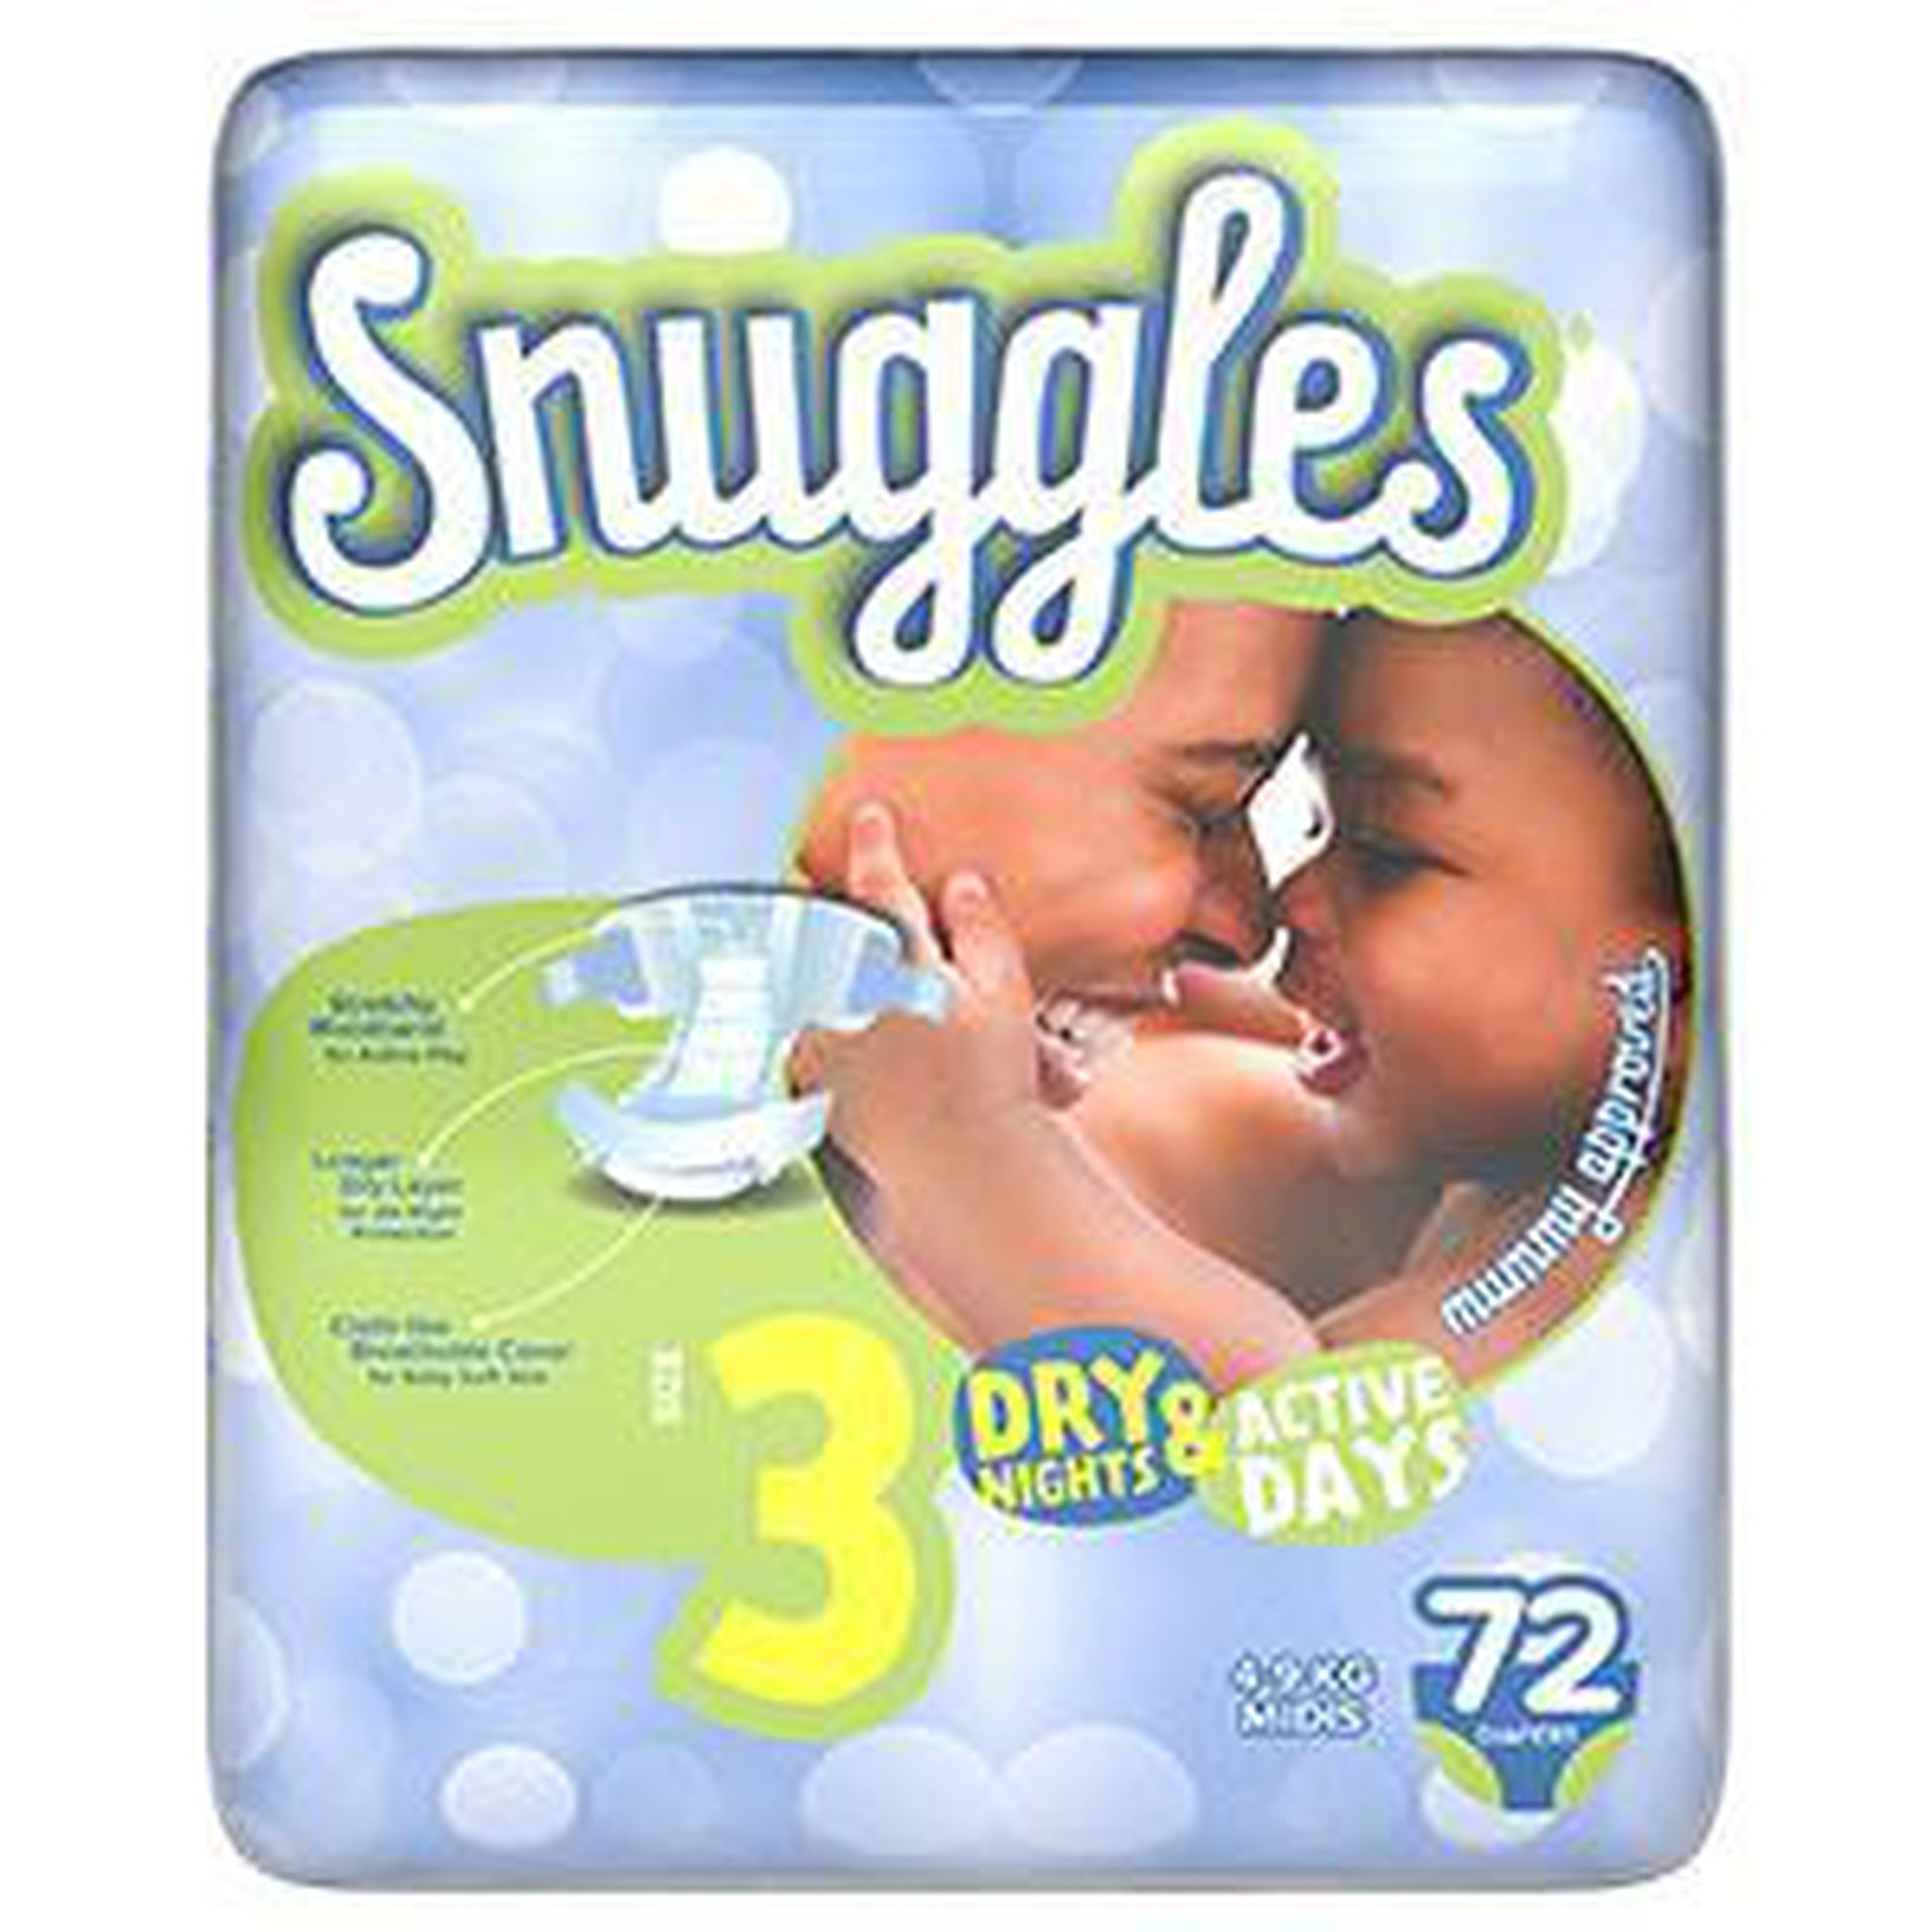 Snuggles Baby Diapers midi (Size 3) 4-9 Kg,Jumbo Pack 72s-Diapers-Mother and Baby Shop Kenya's #1 Online Baby Shop